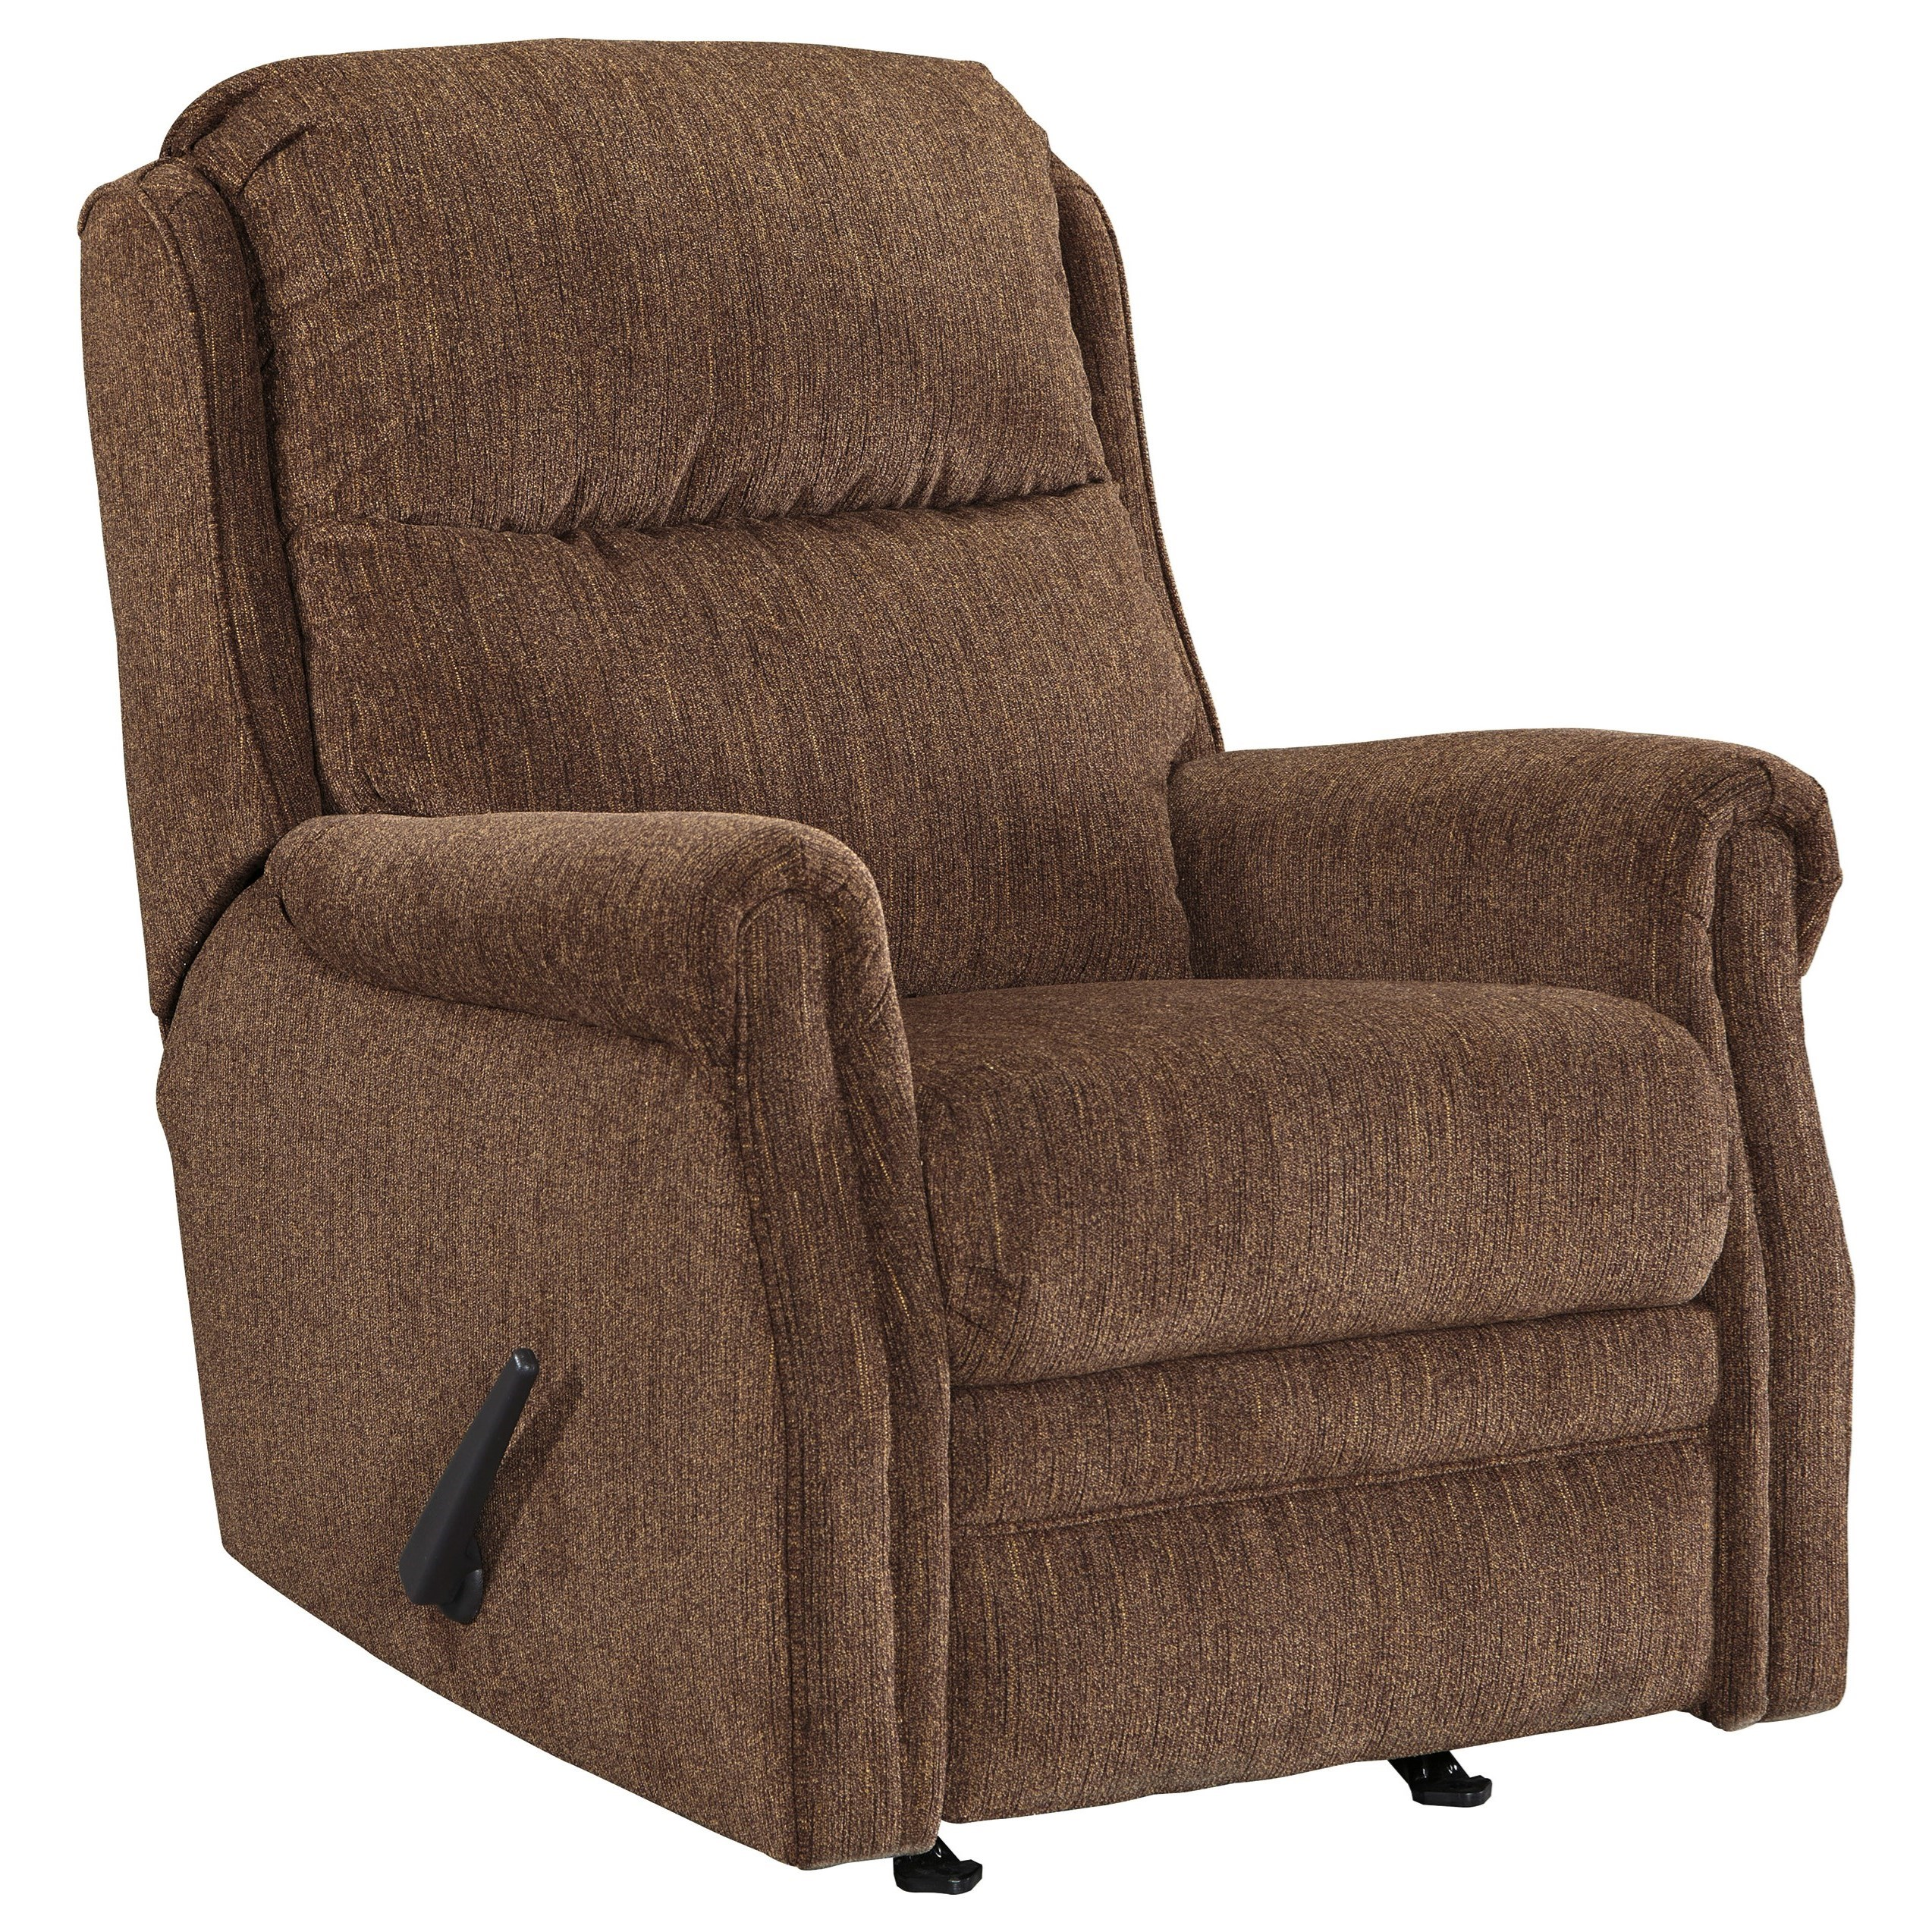 Signature Design by Ashley Earles Rocker Recliner - Item Number: 6430625